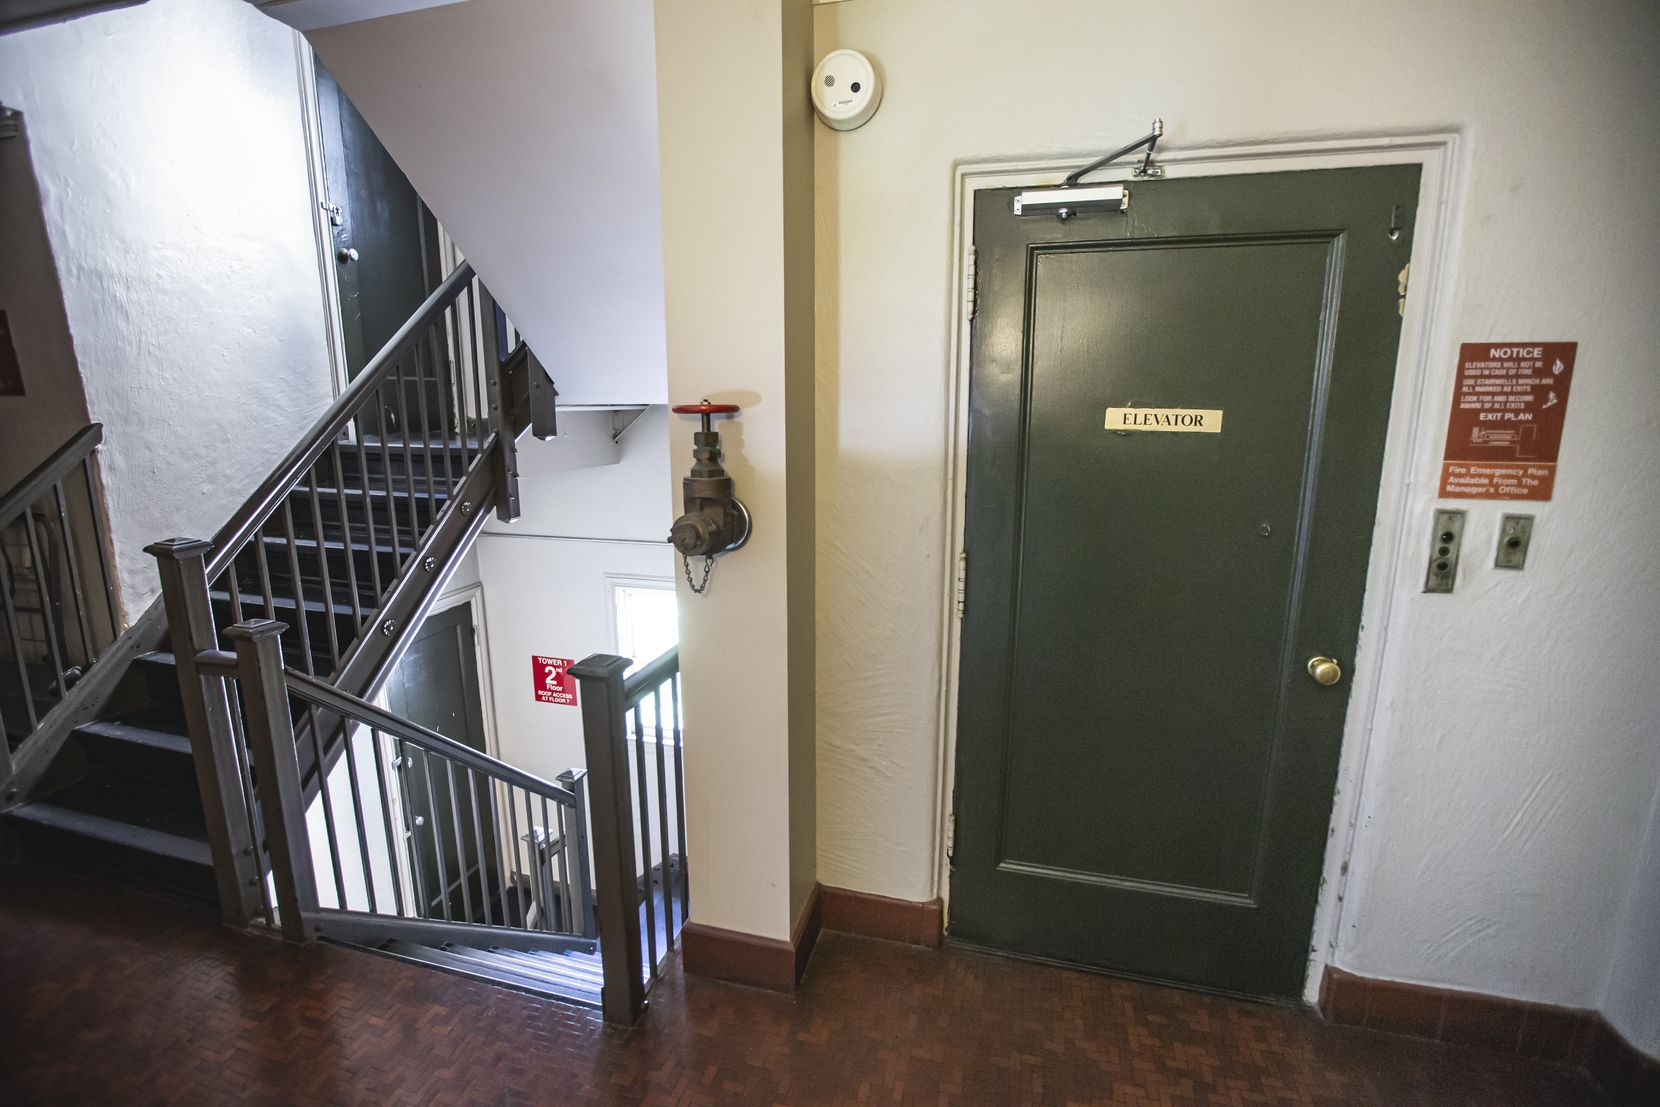 Each landing has 14 steps, so with the broken elevators, someone living on the 7th floor would have to climb 98 steps.